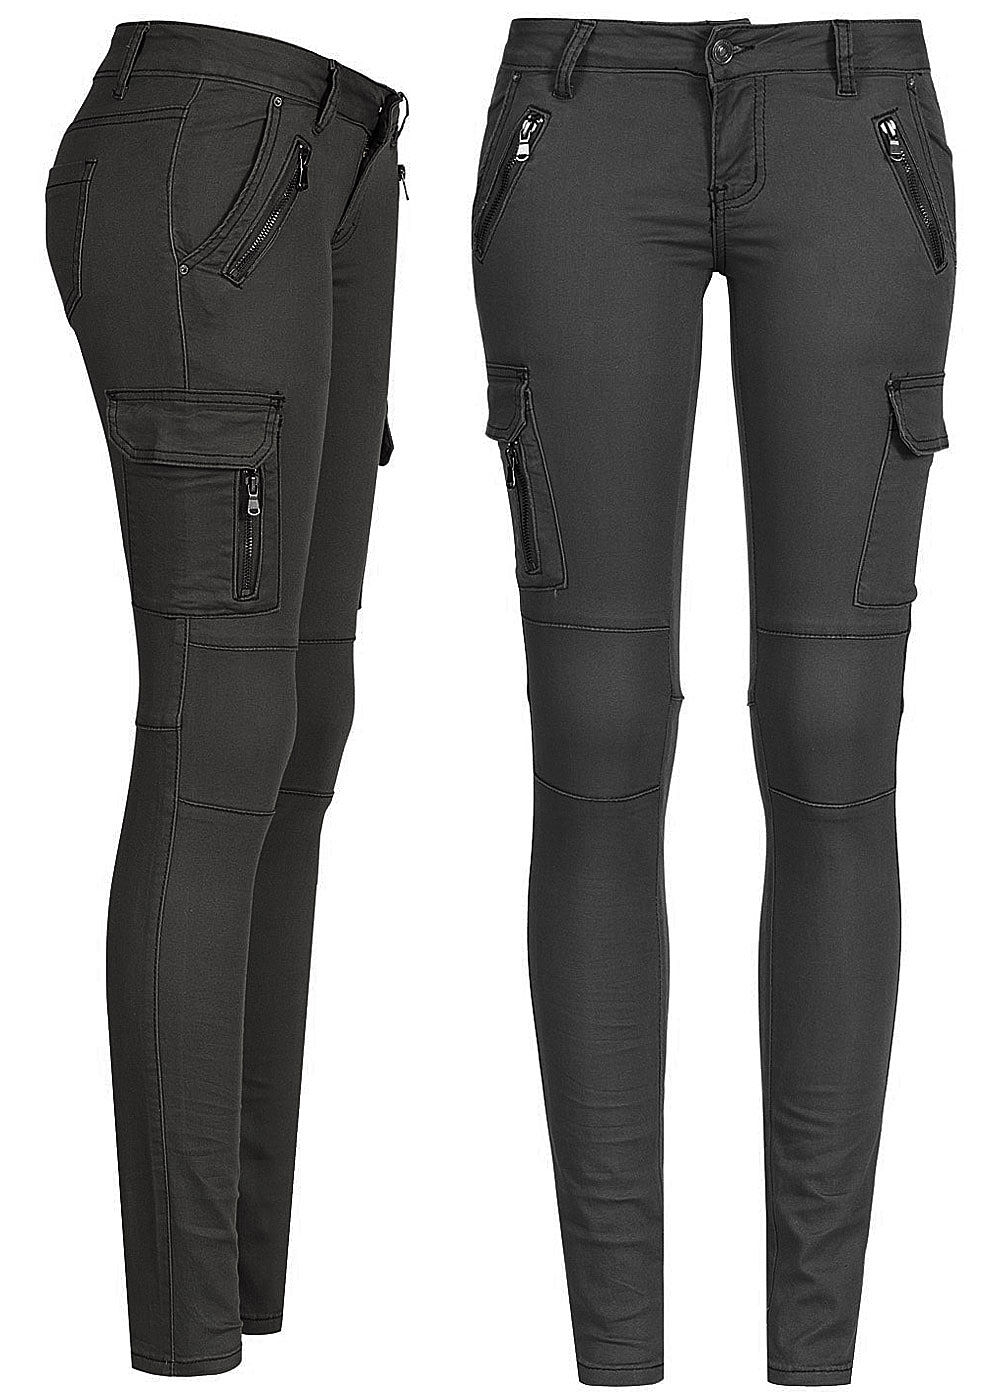 seventyseven lifestyle damen cargo jeans hose 6 pockets schwarz denim 77onlineshop. Black Bedroom Furniture Sets. Home Design Ideas